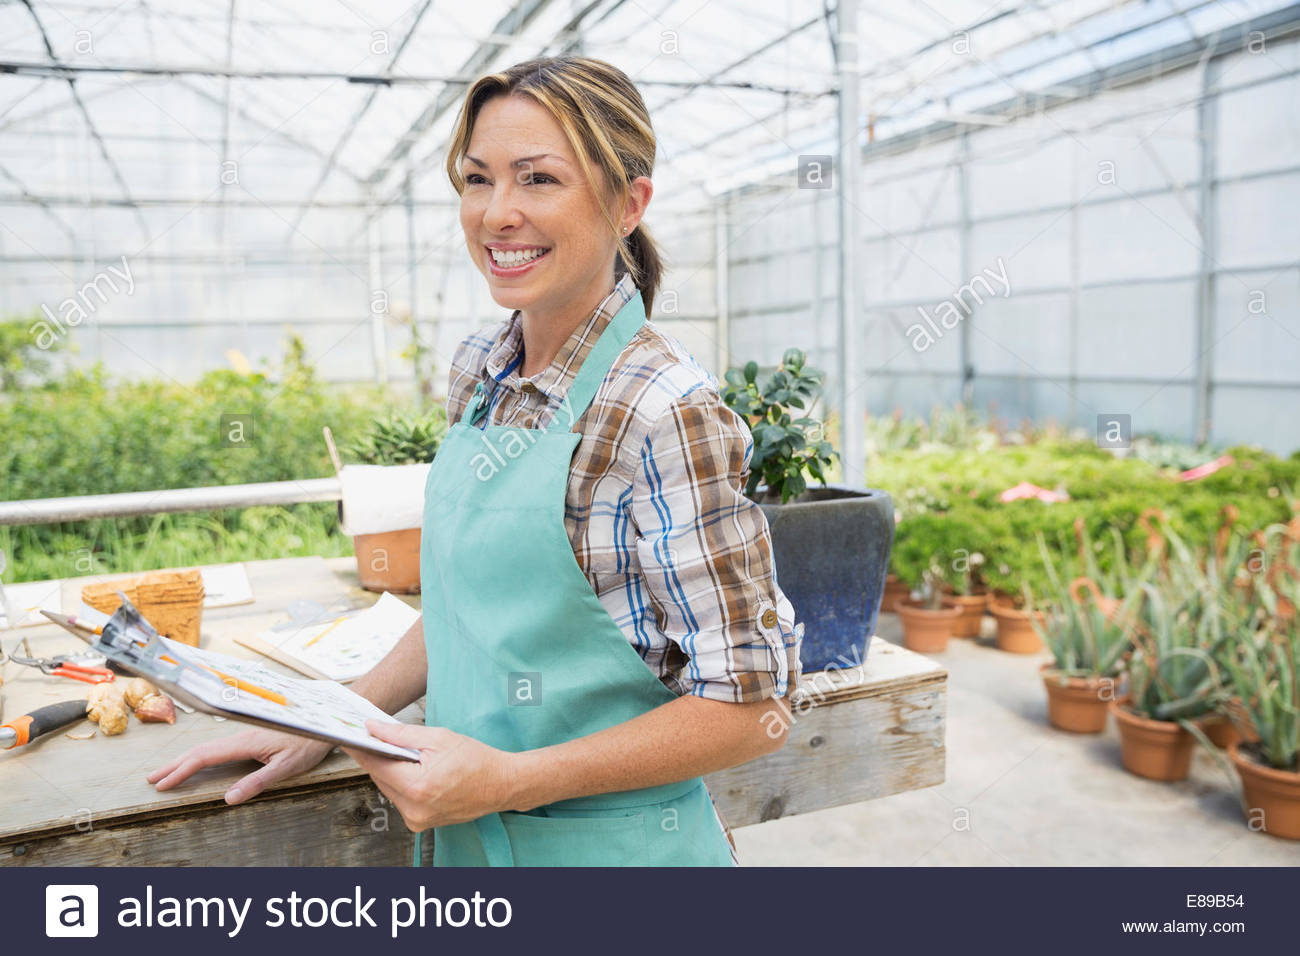 Smiling worker with clipboard in greenhouse - Stock Image